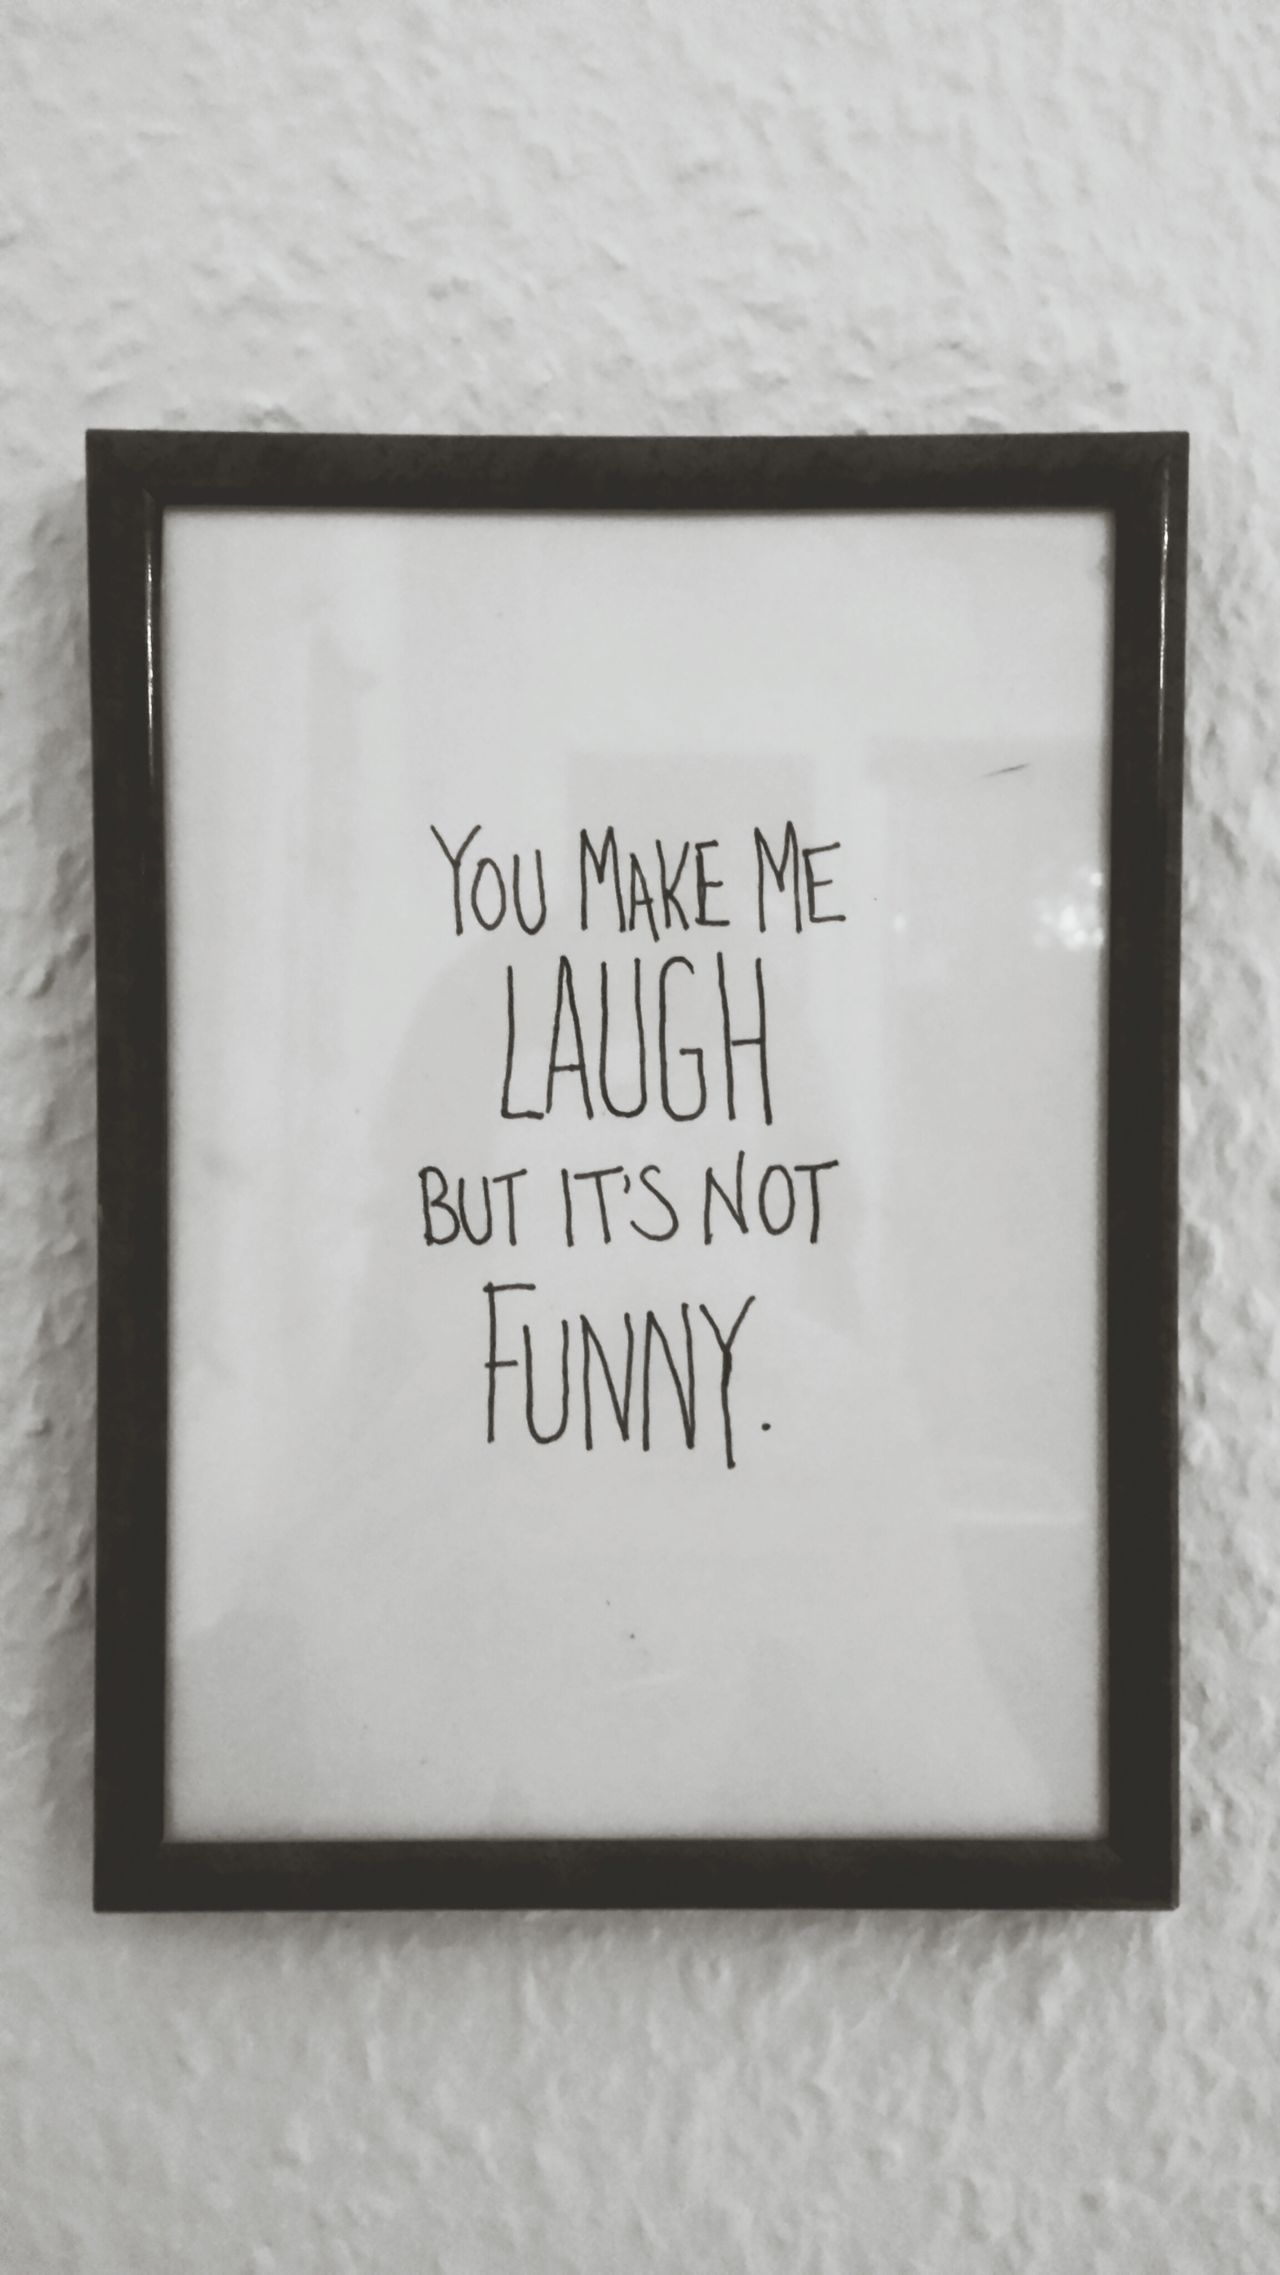 You Make Me Laugh But It's Not Funny v2.0